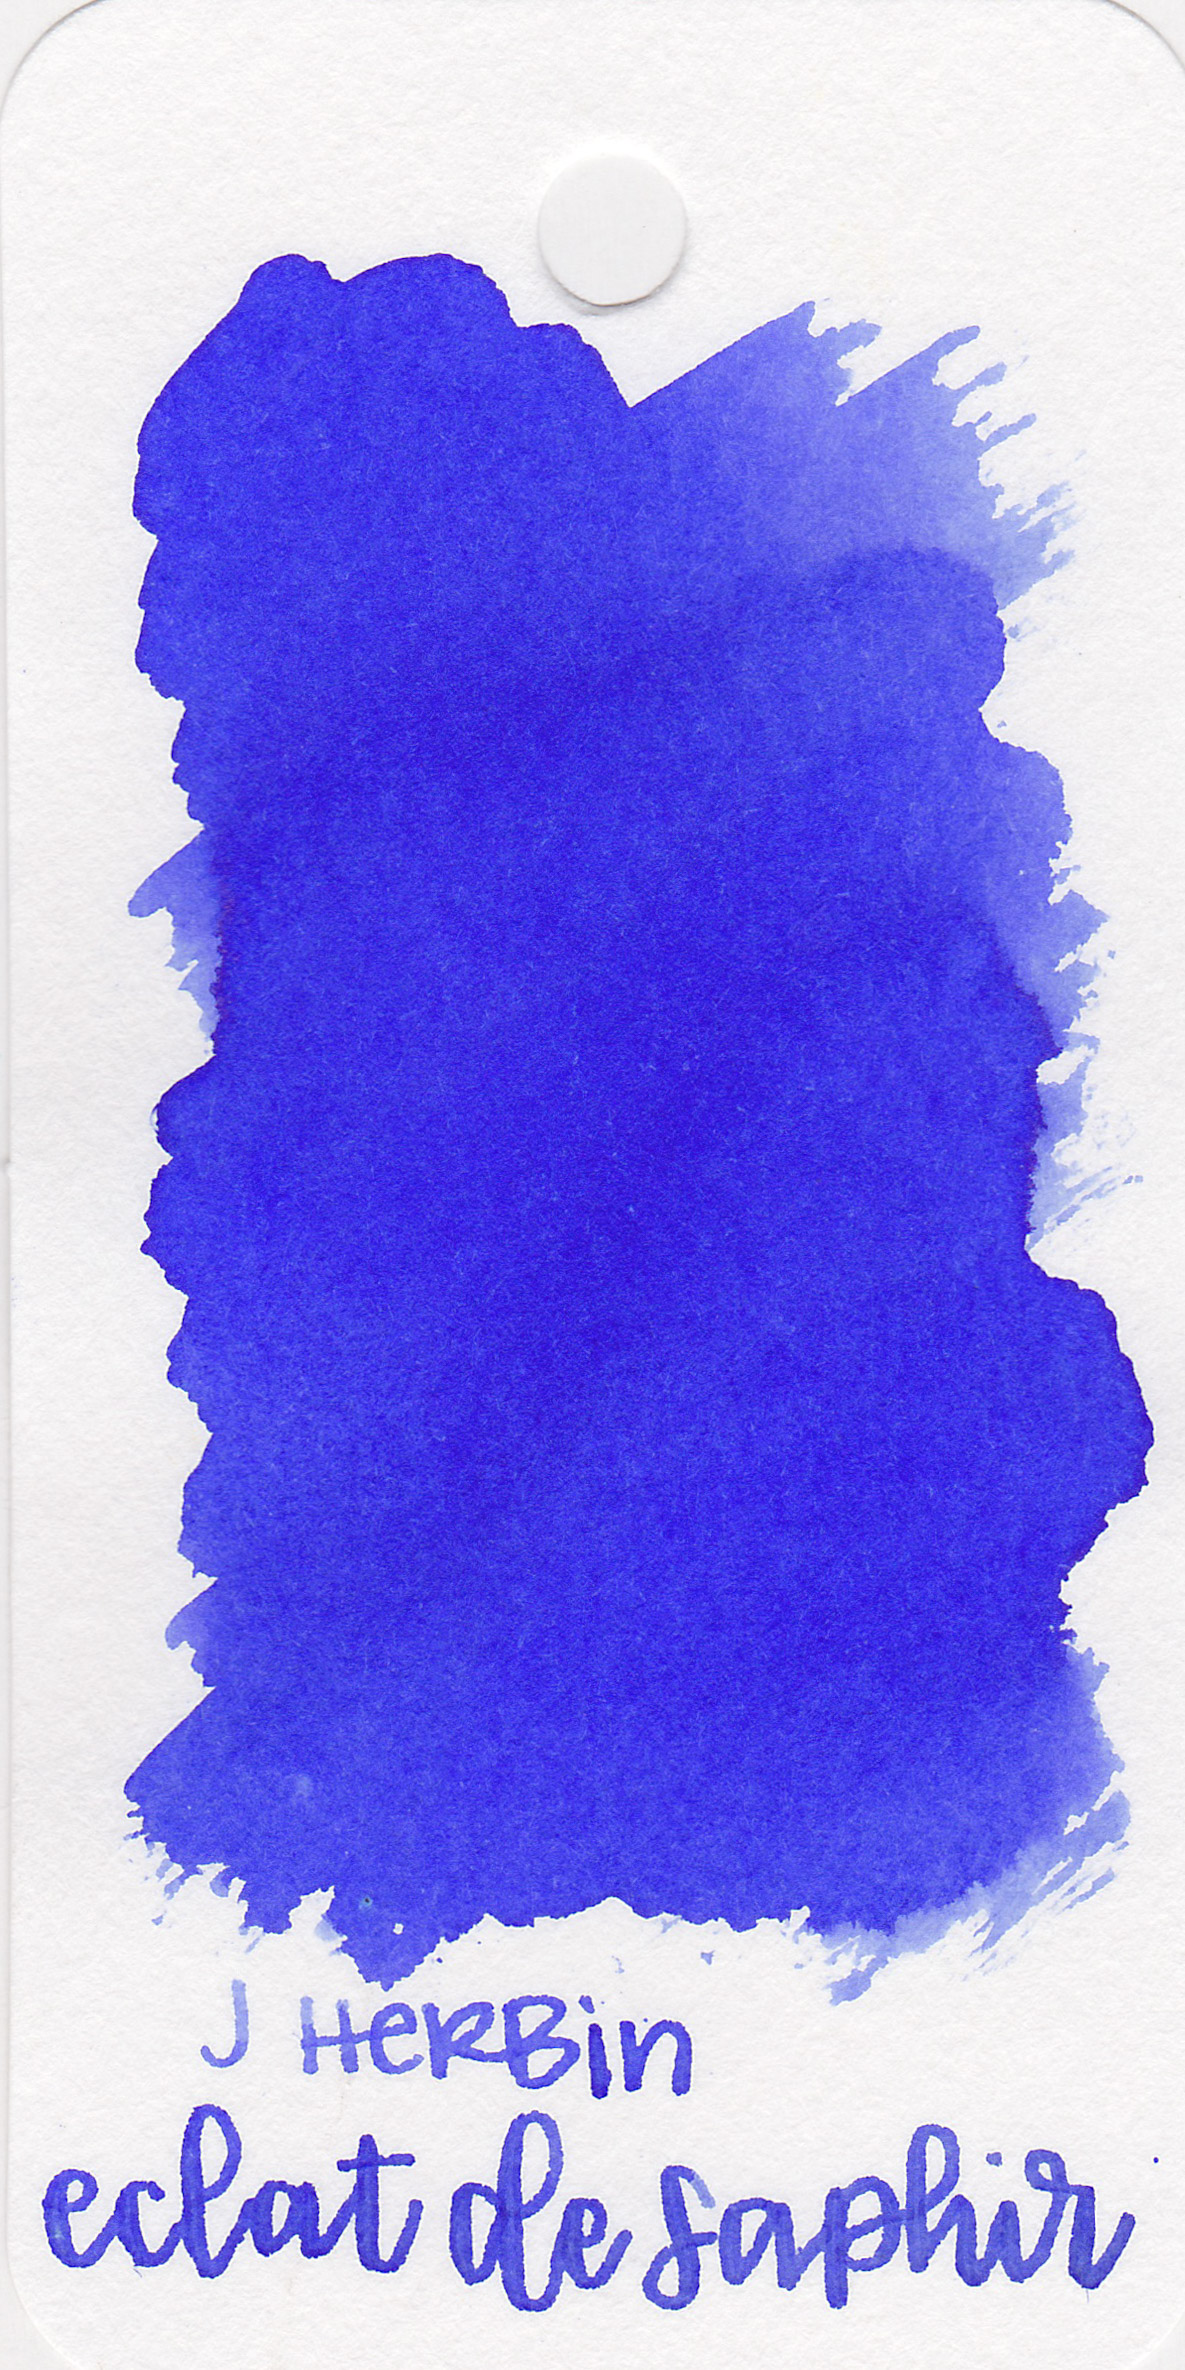 The color: - Eclat de Saphir is a vibrant blue-purple or blurple.